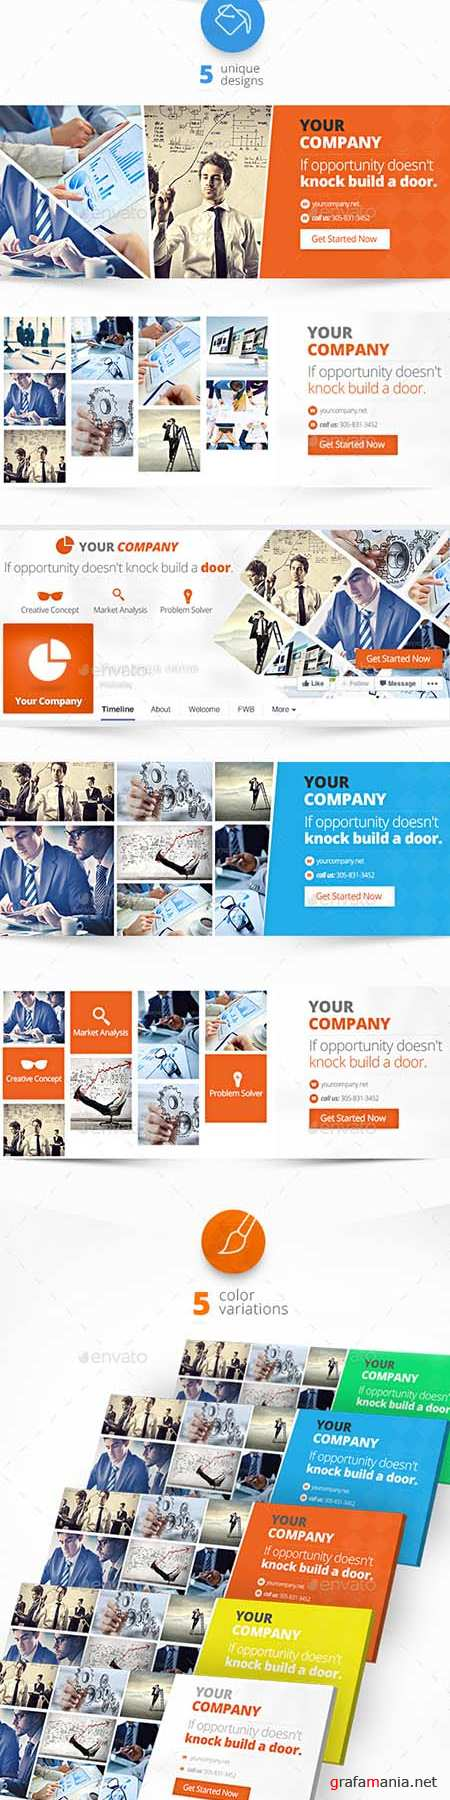 GraphicRiver - Corporate Facebook Timeline Covers 11335918